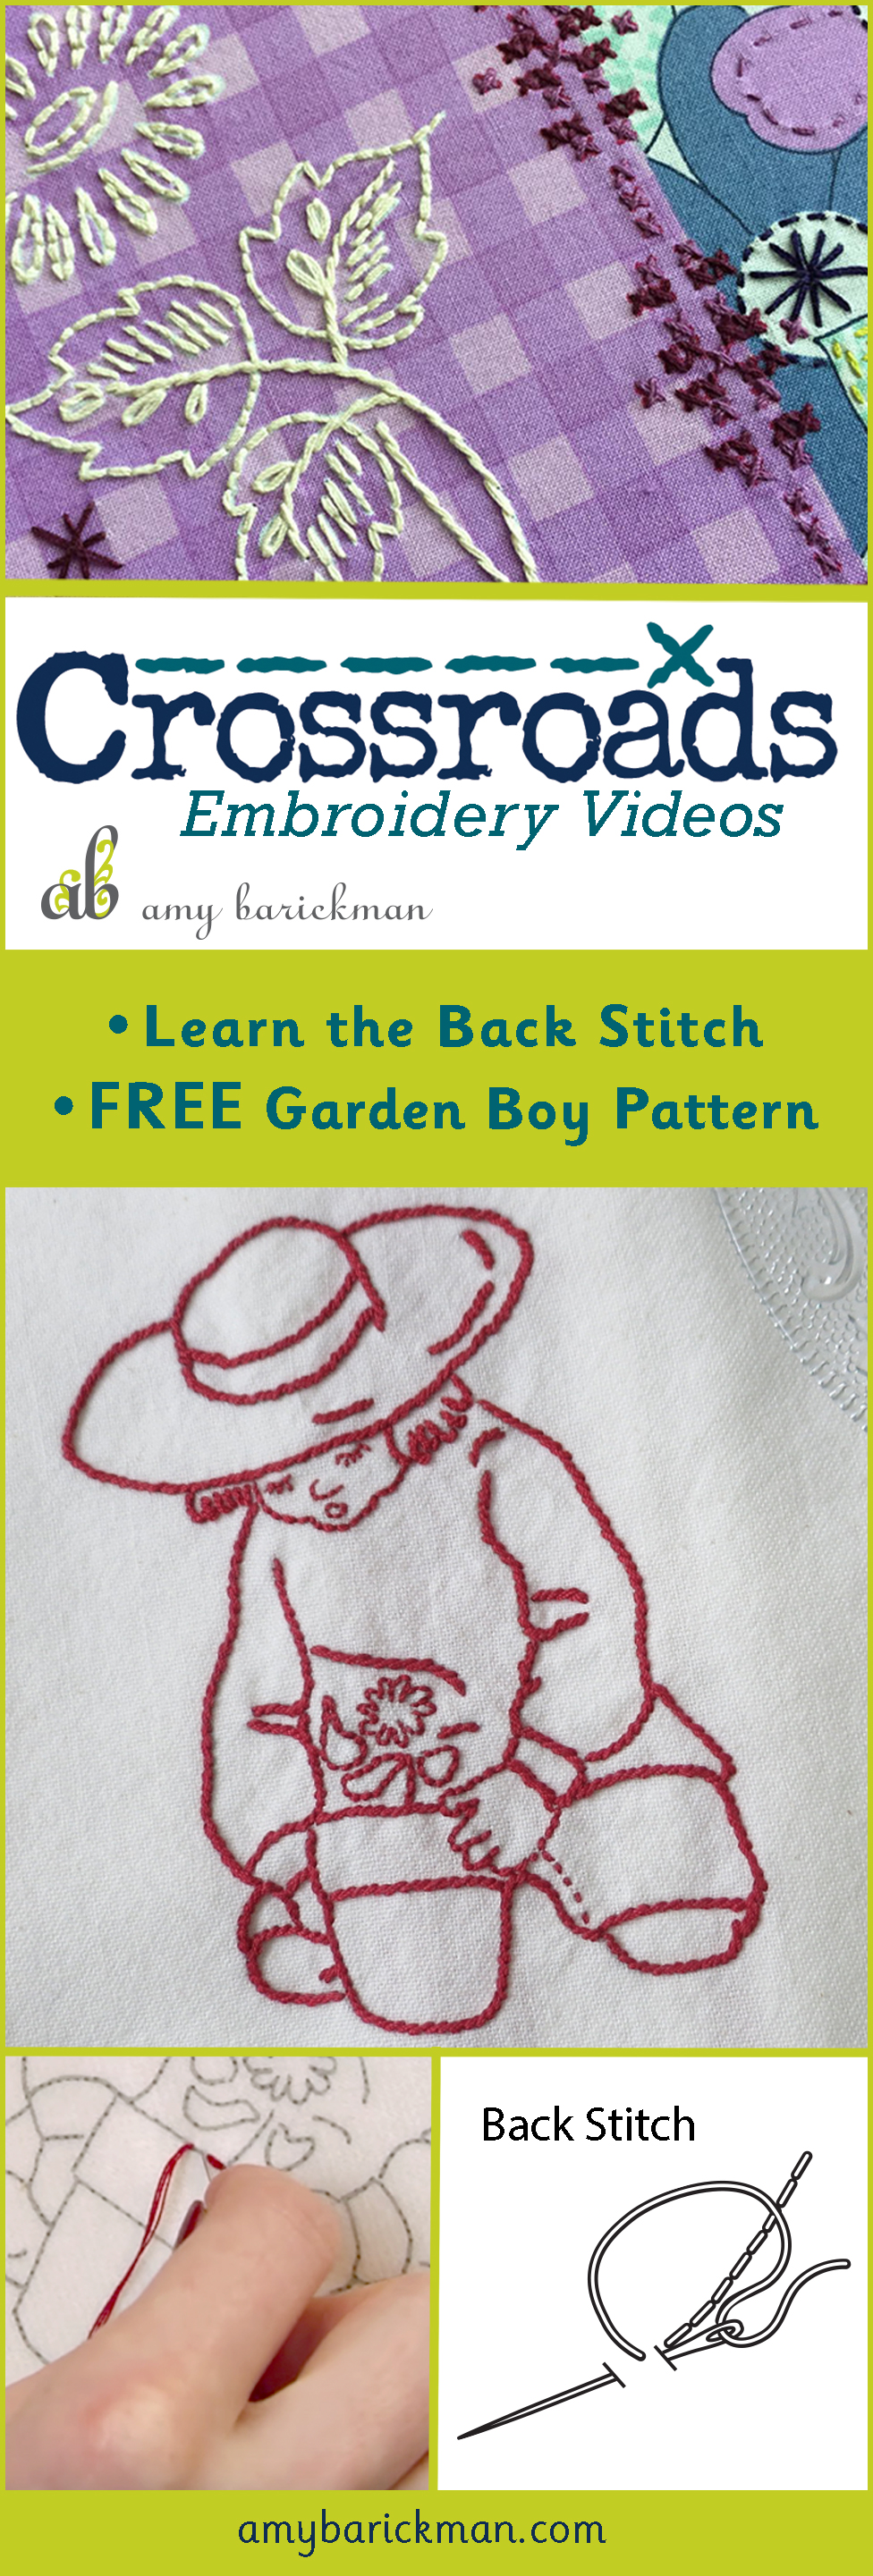 Author Amy Barickman gives a video tutorial on how to do the backstitch, and includes a cute vintage inspired pattern for you to practice with!